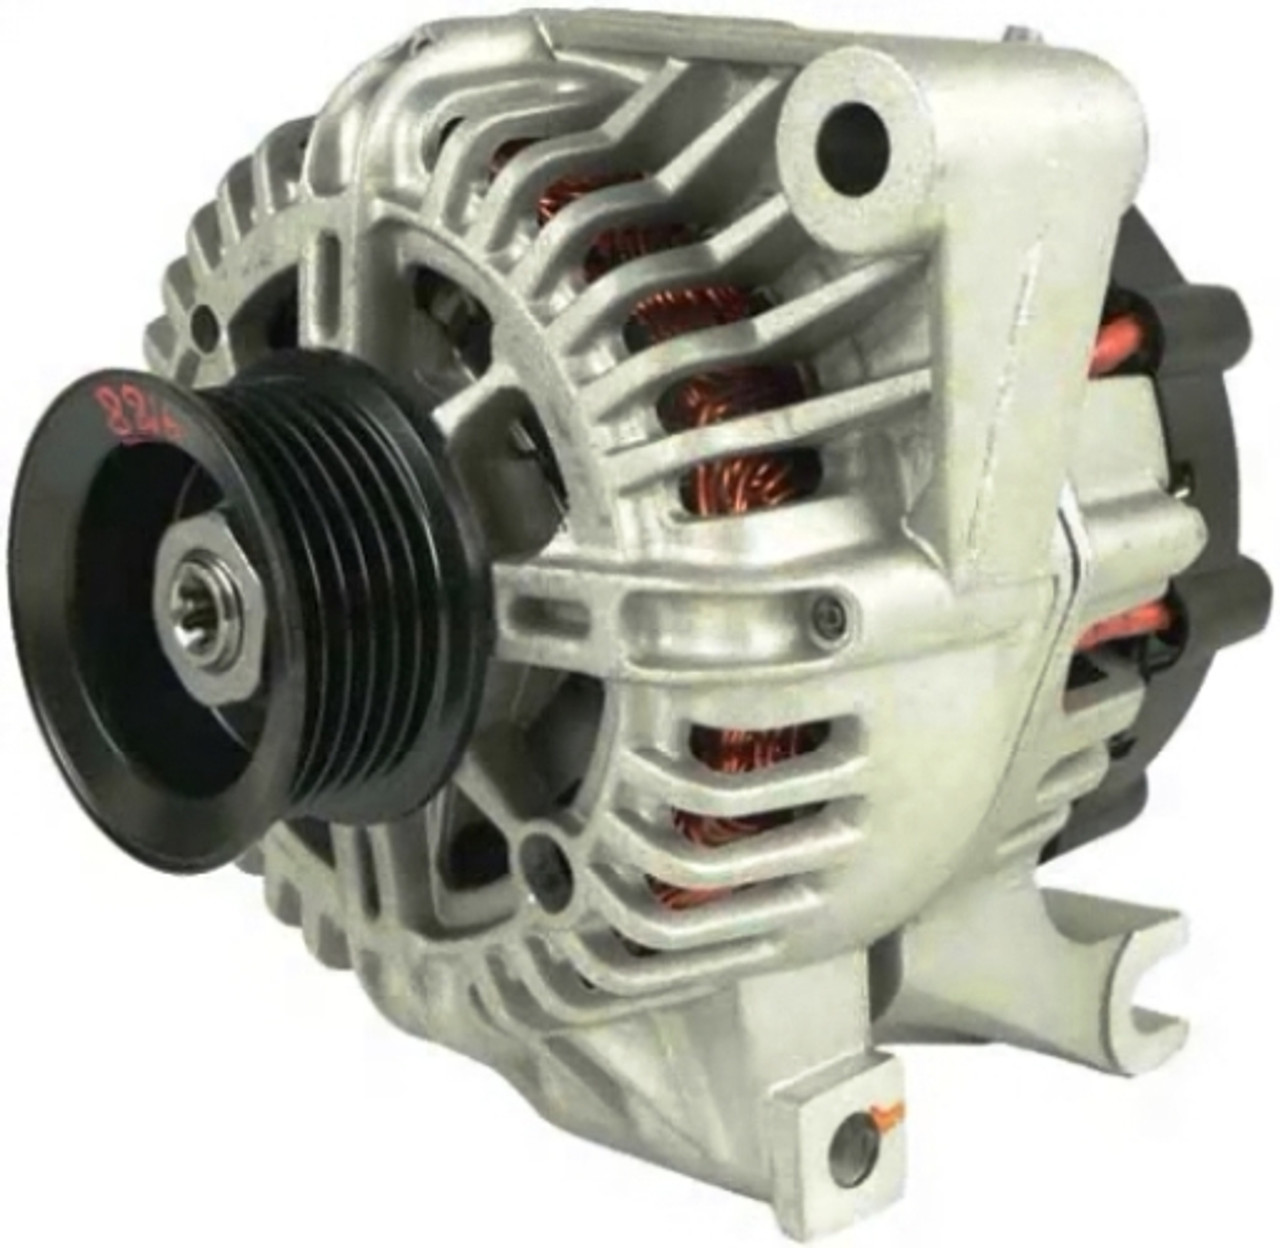 New Alternator 2004 Chevrolet Malibu 3 5l V6